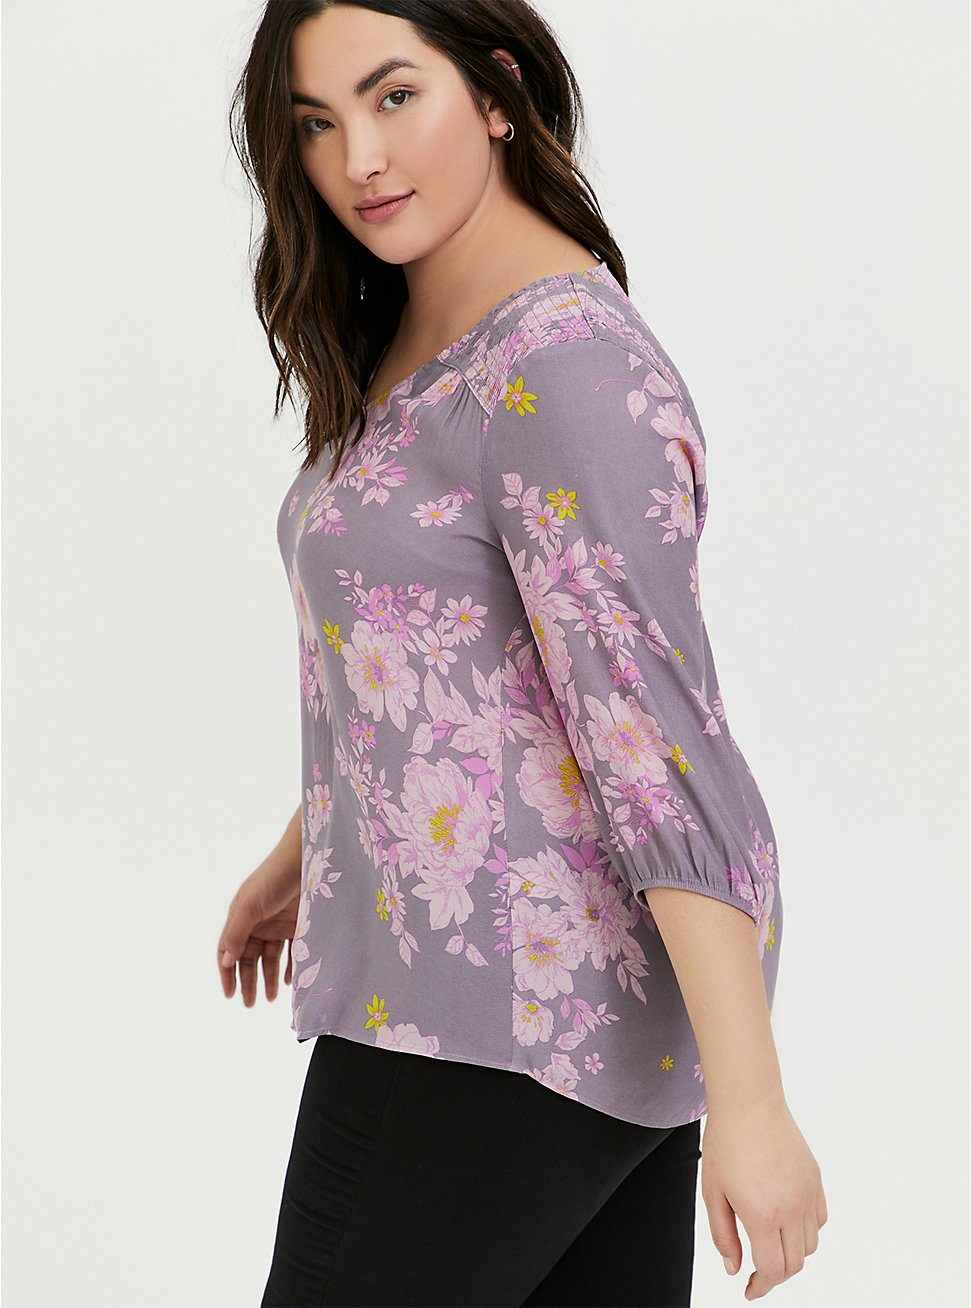 Slate Grey & Purple Floral Crepe Smocked Blouse, FLORALS-GREY, hi-res